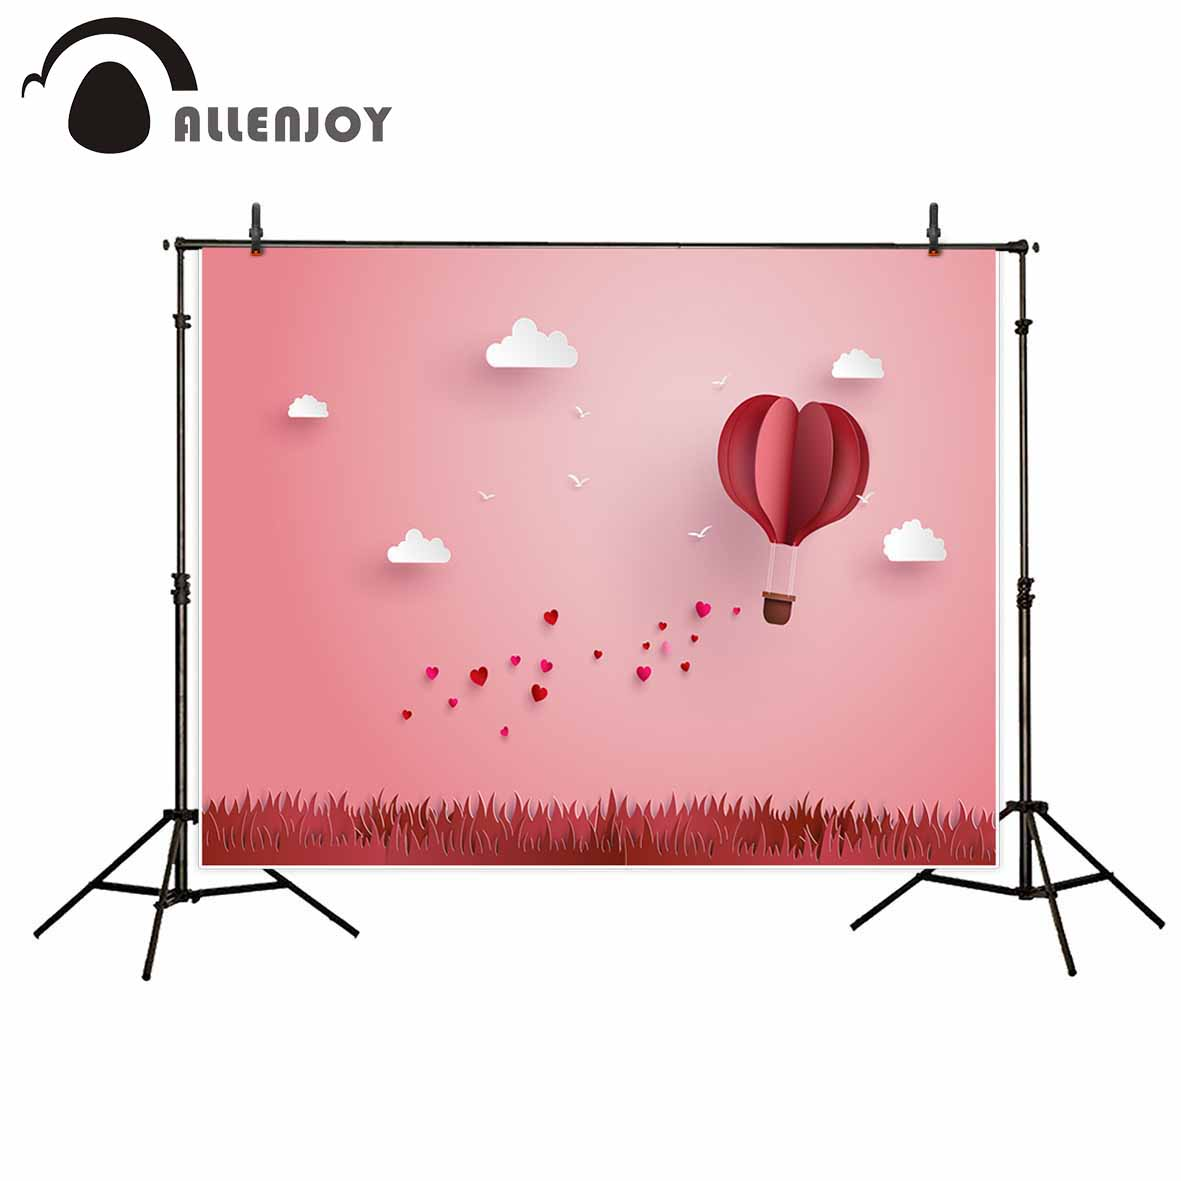 Allenjoy Pink background hearts cloud paper hot air balloon photography backdrops photography studio funds allenjoy photography background pink